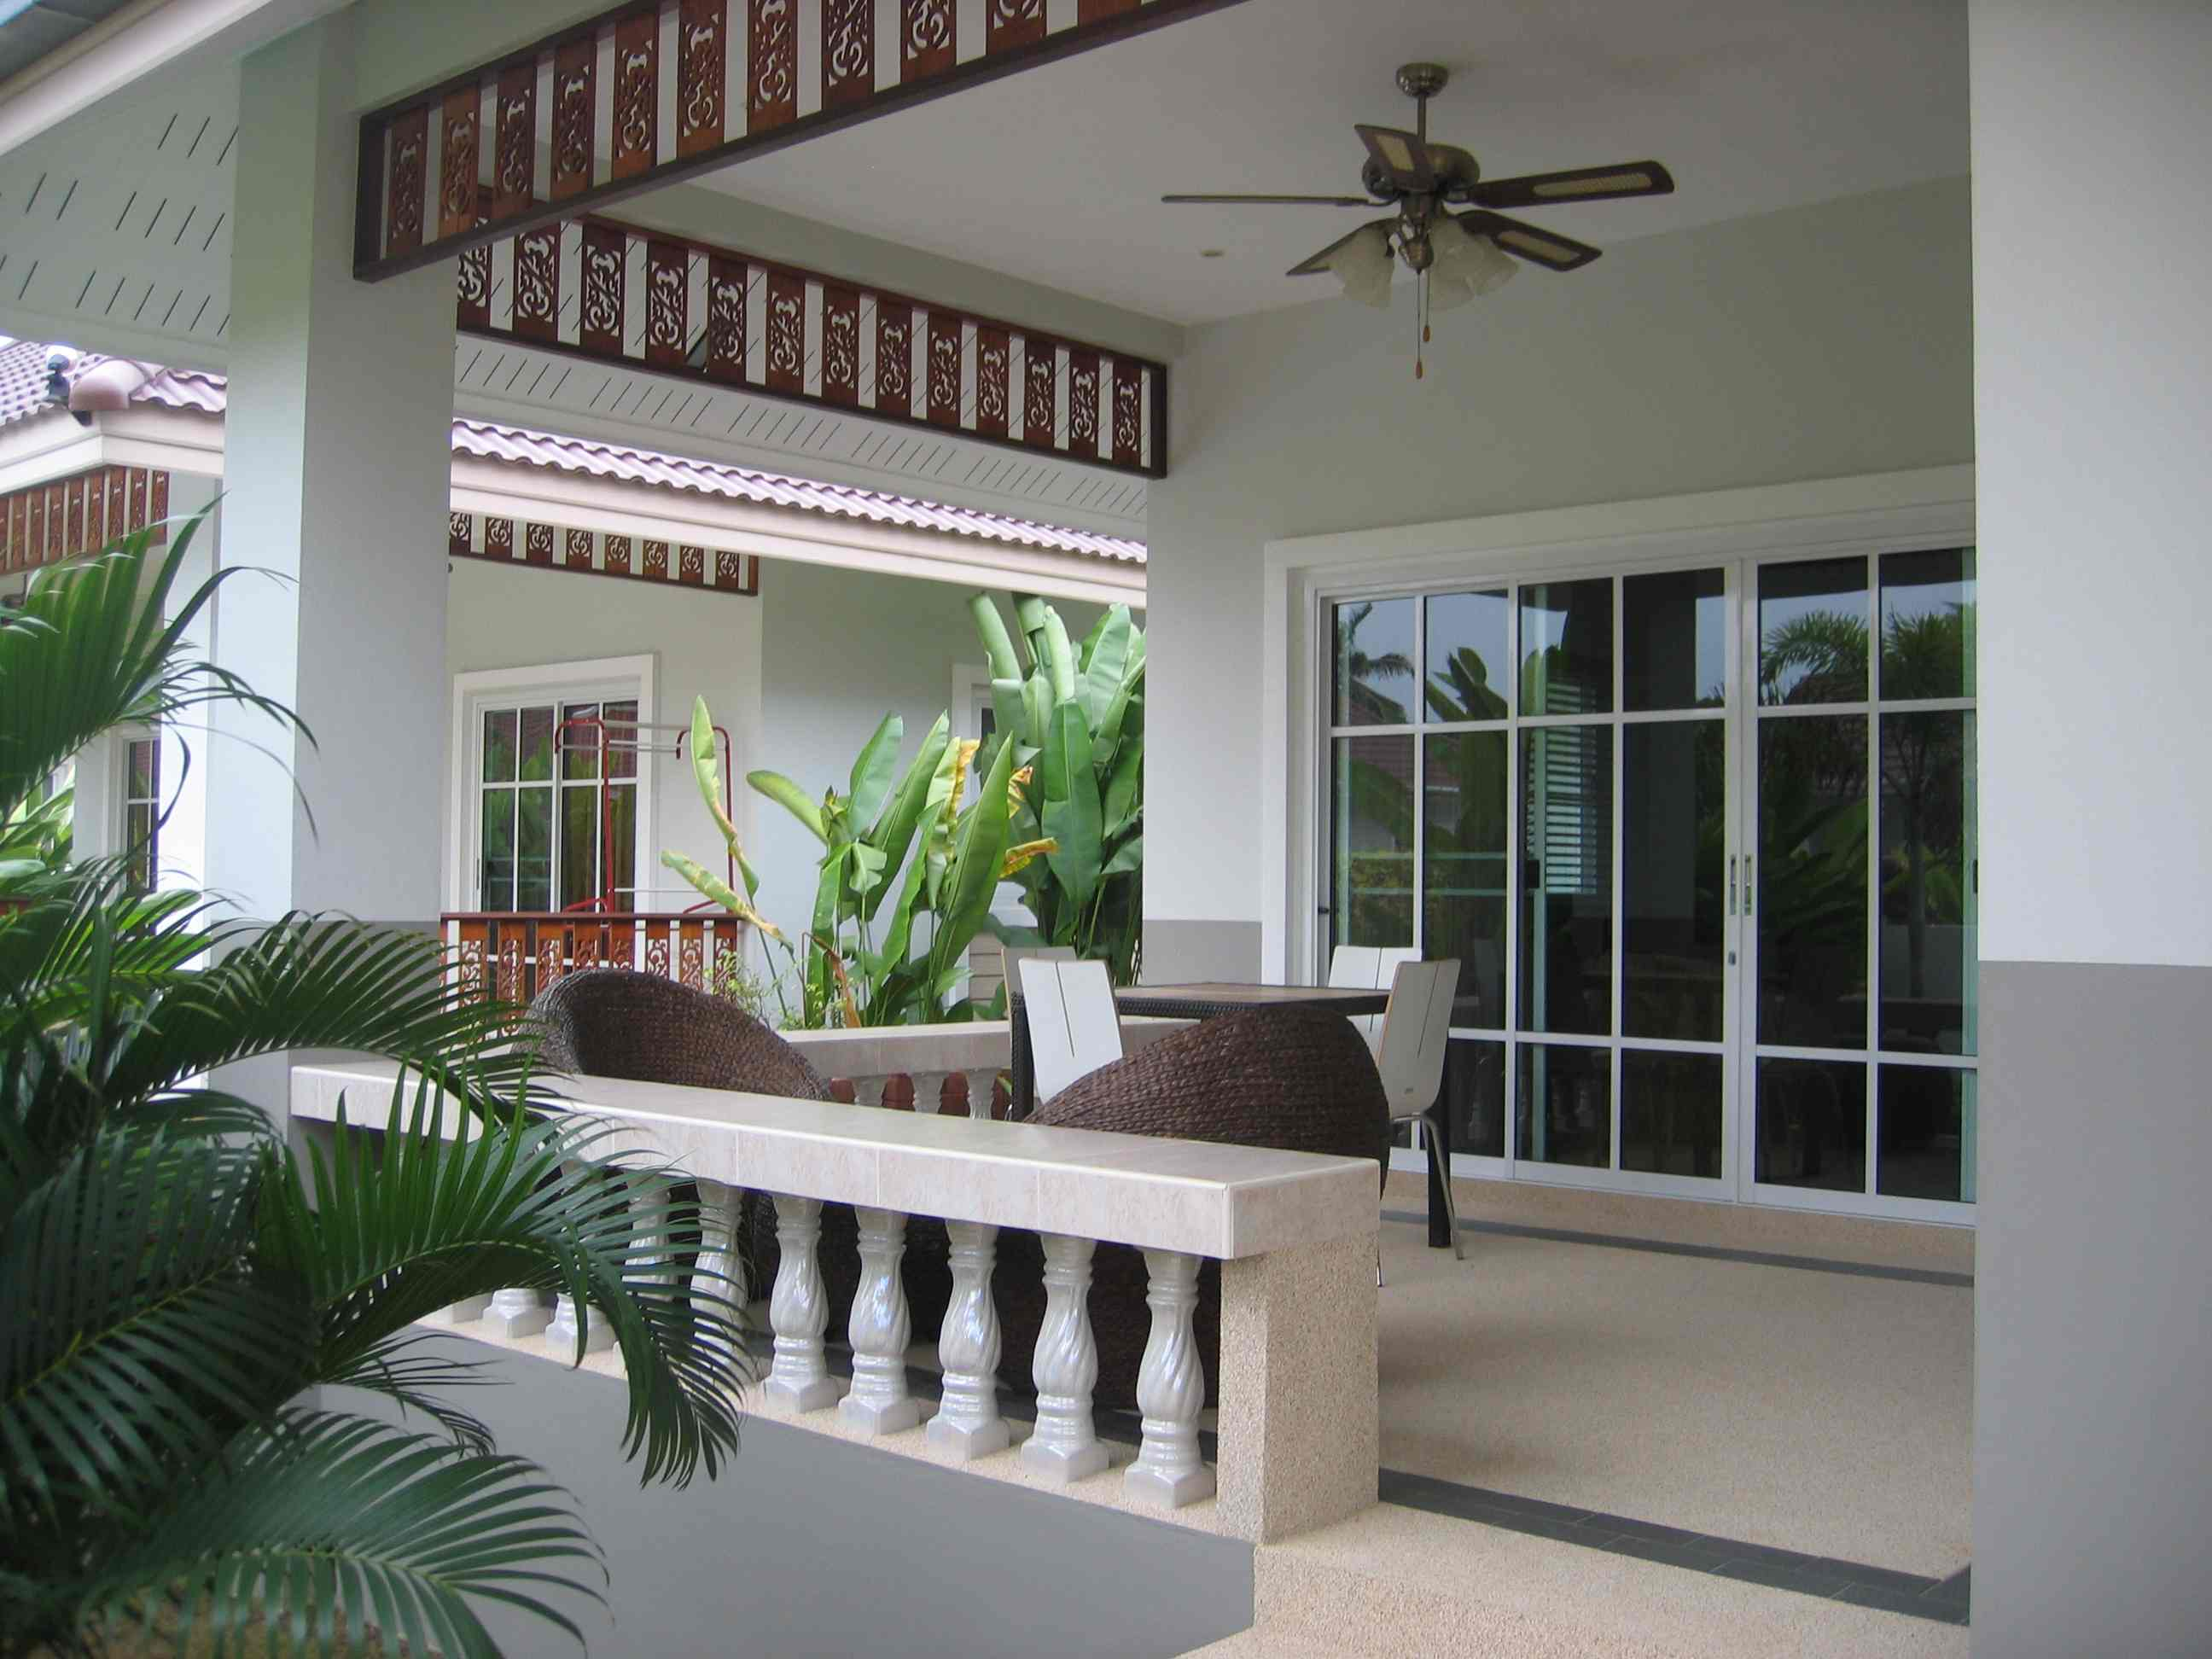 House for rent in hua hin for Terrace of house